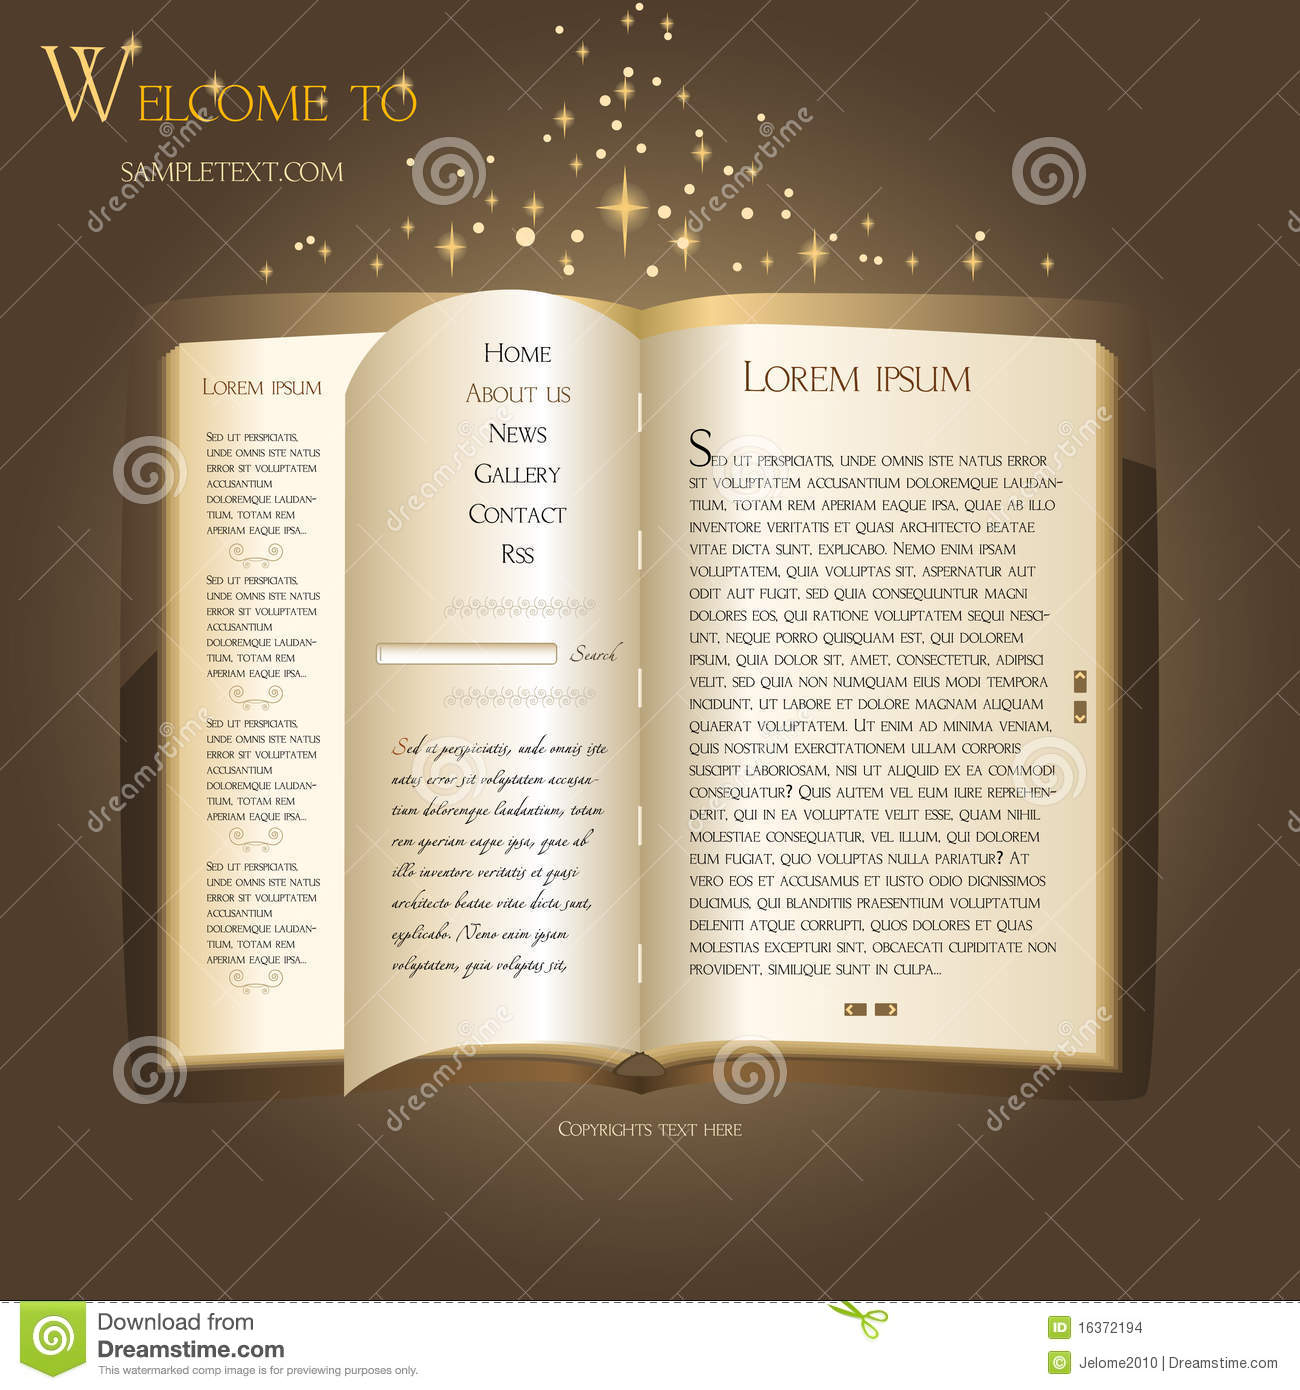 Fairytale Book Like A Website Template